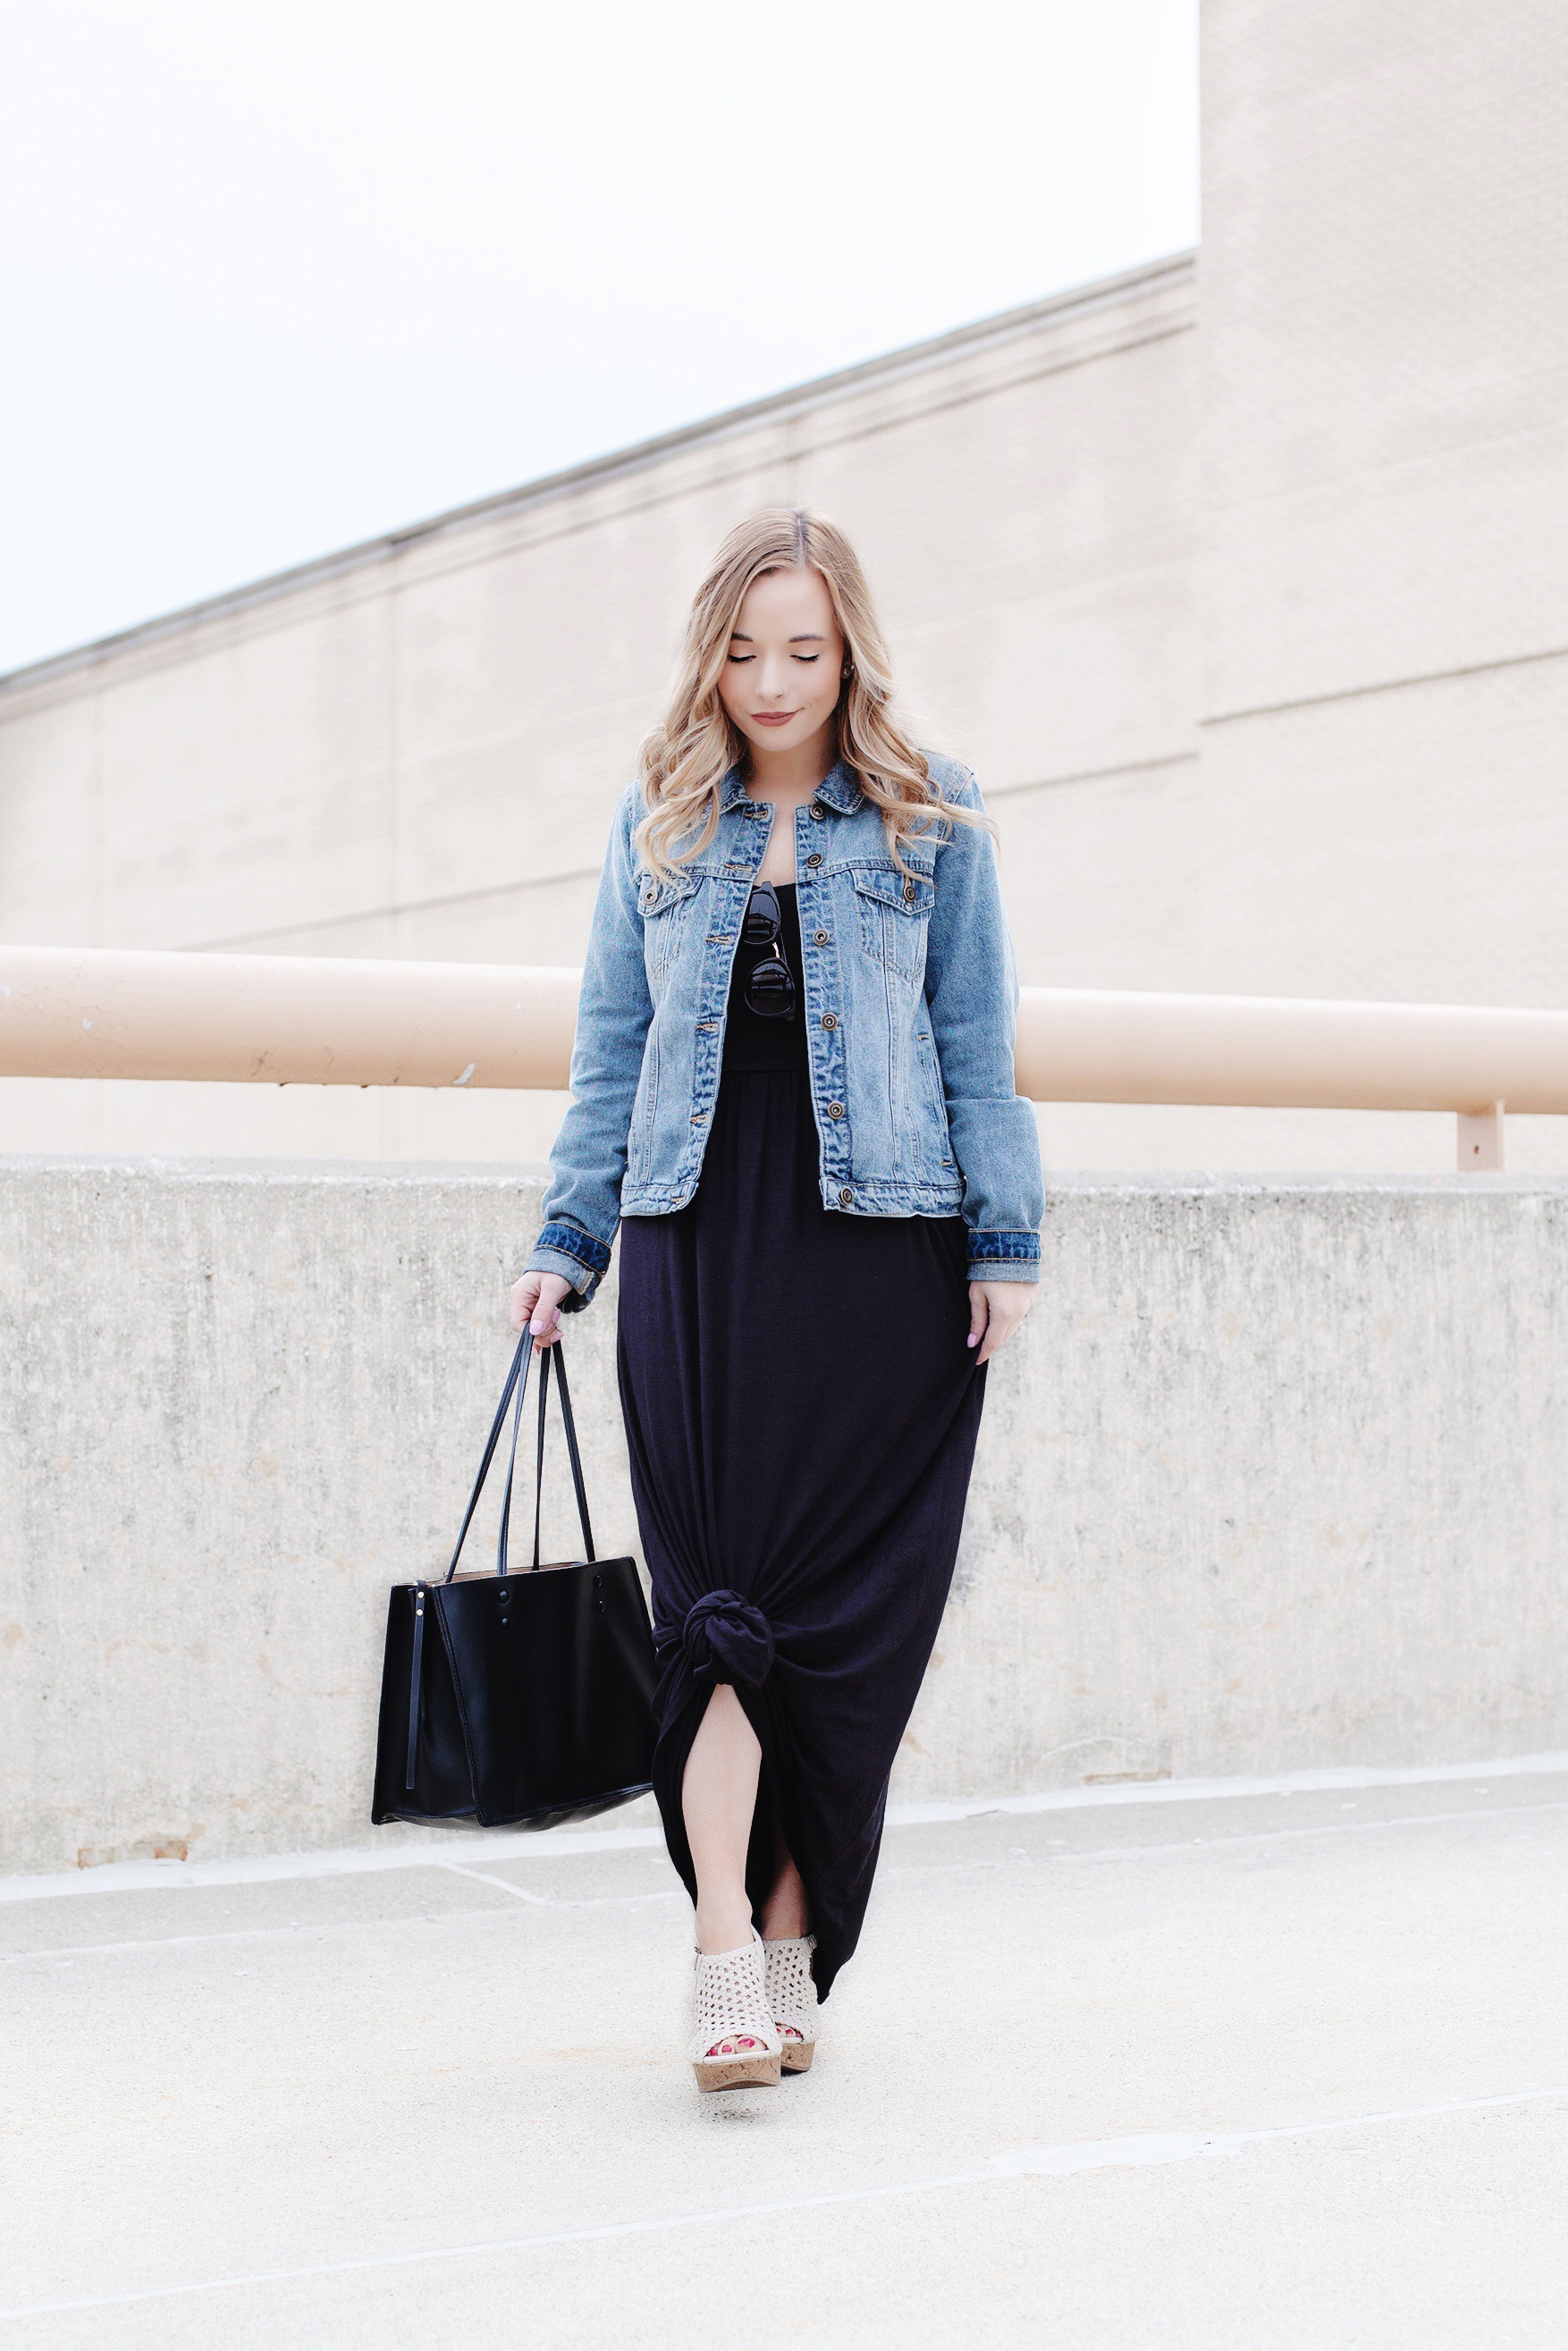 How To Wear A Maxi Dress When You're Short